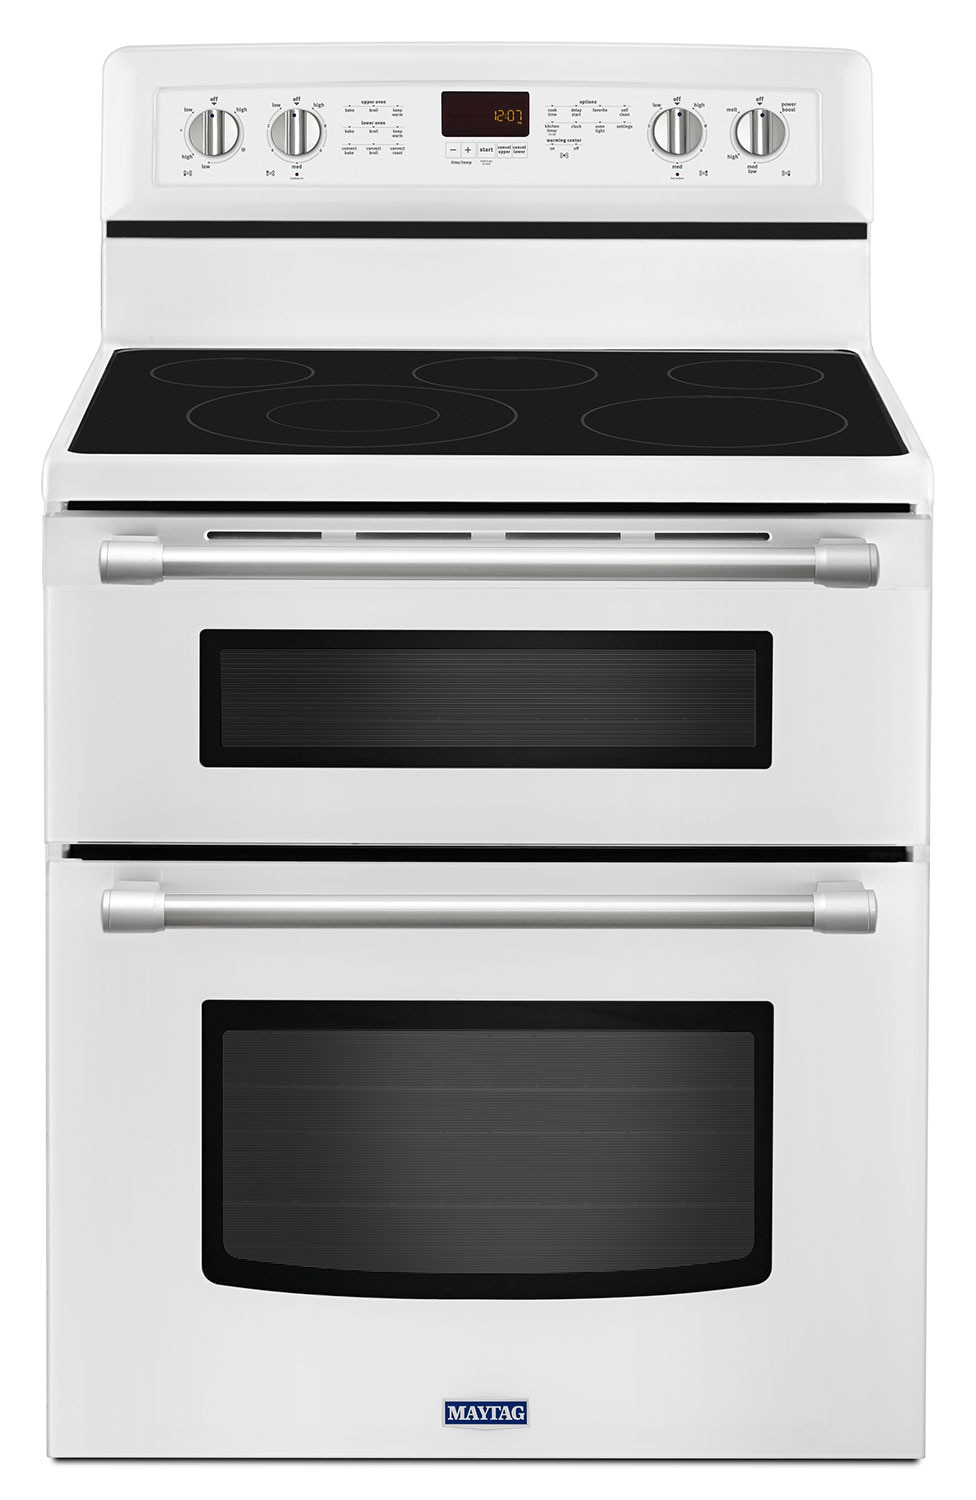 Cooking Products - Maytag 6.7 Cu. Ft. Double Oven Electric Range – YMET8720DH